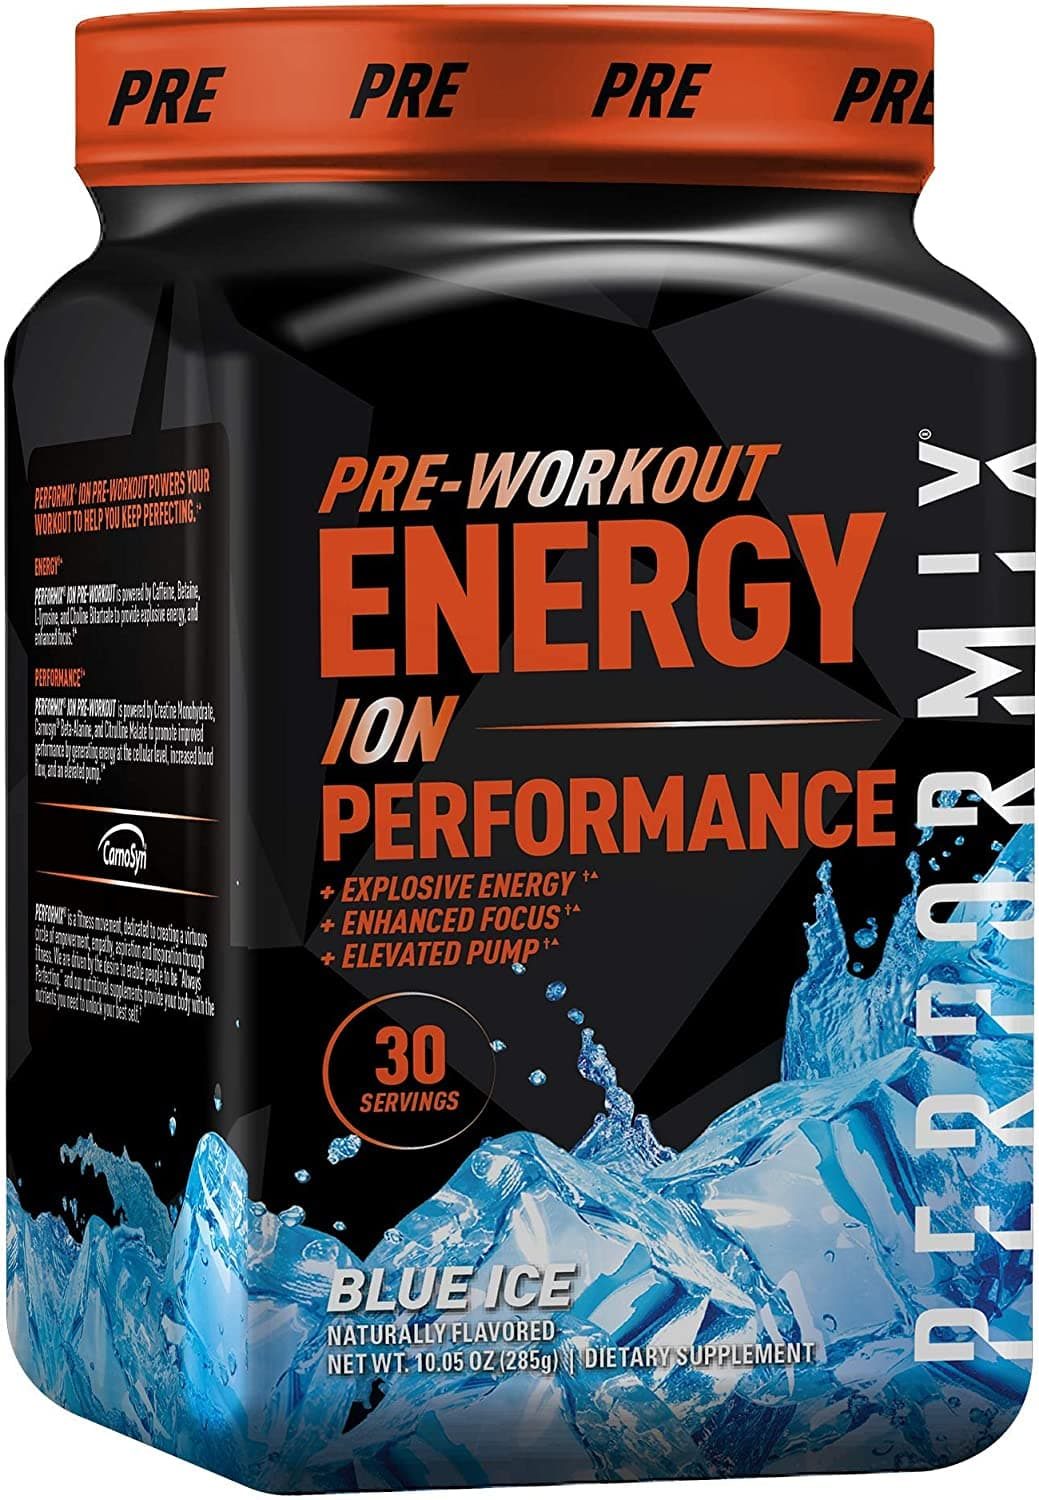 Performix ION Pre-Workout